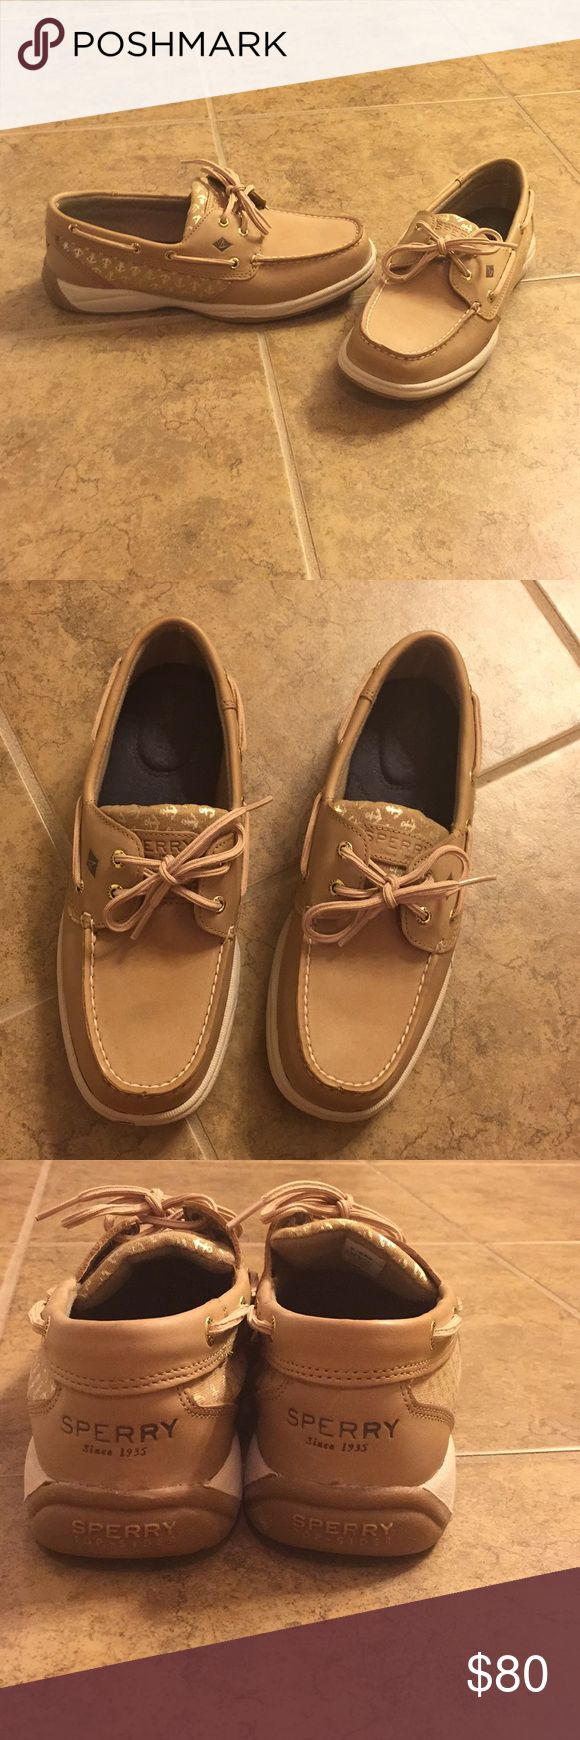 NEW Sperry topsiders womens 7.5 Brand new never worn. Sperry topsider boat shoe. Tan with super cute anchor pattern on the side. Sperry Top-Sider Shoes Flats & Loafers